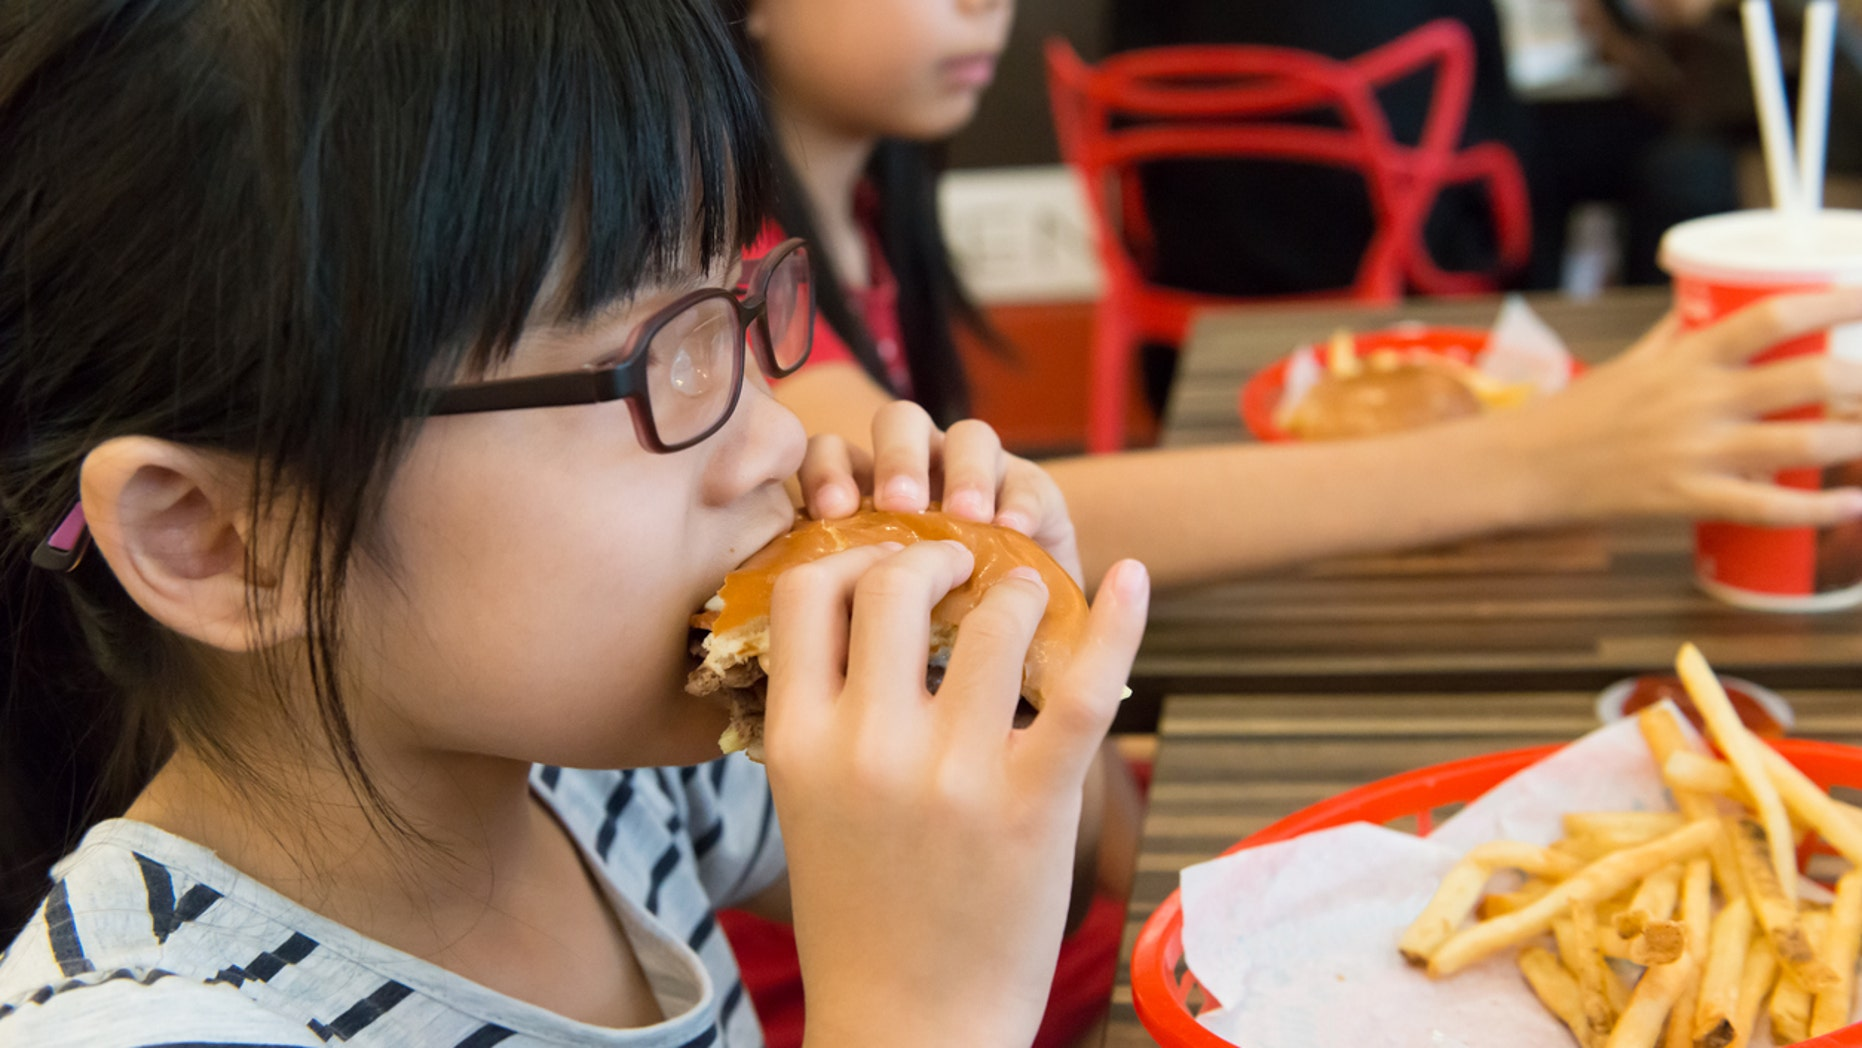 In fact, McDonald's didn't even invent the concept of a kids' meal.